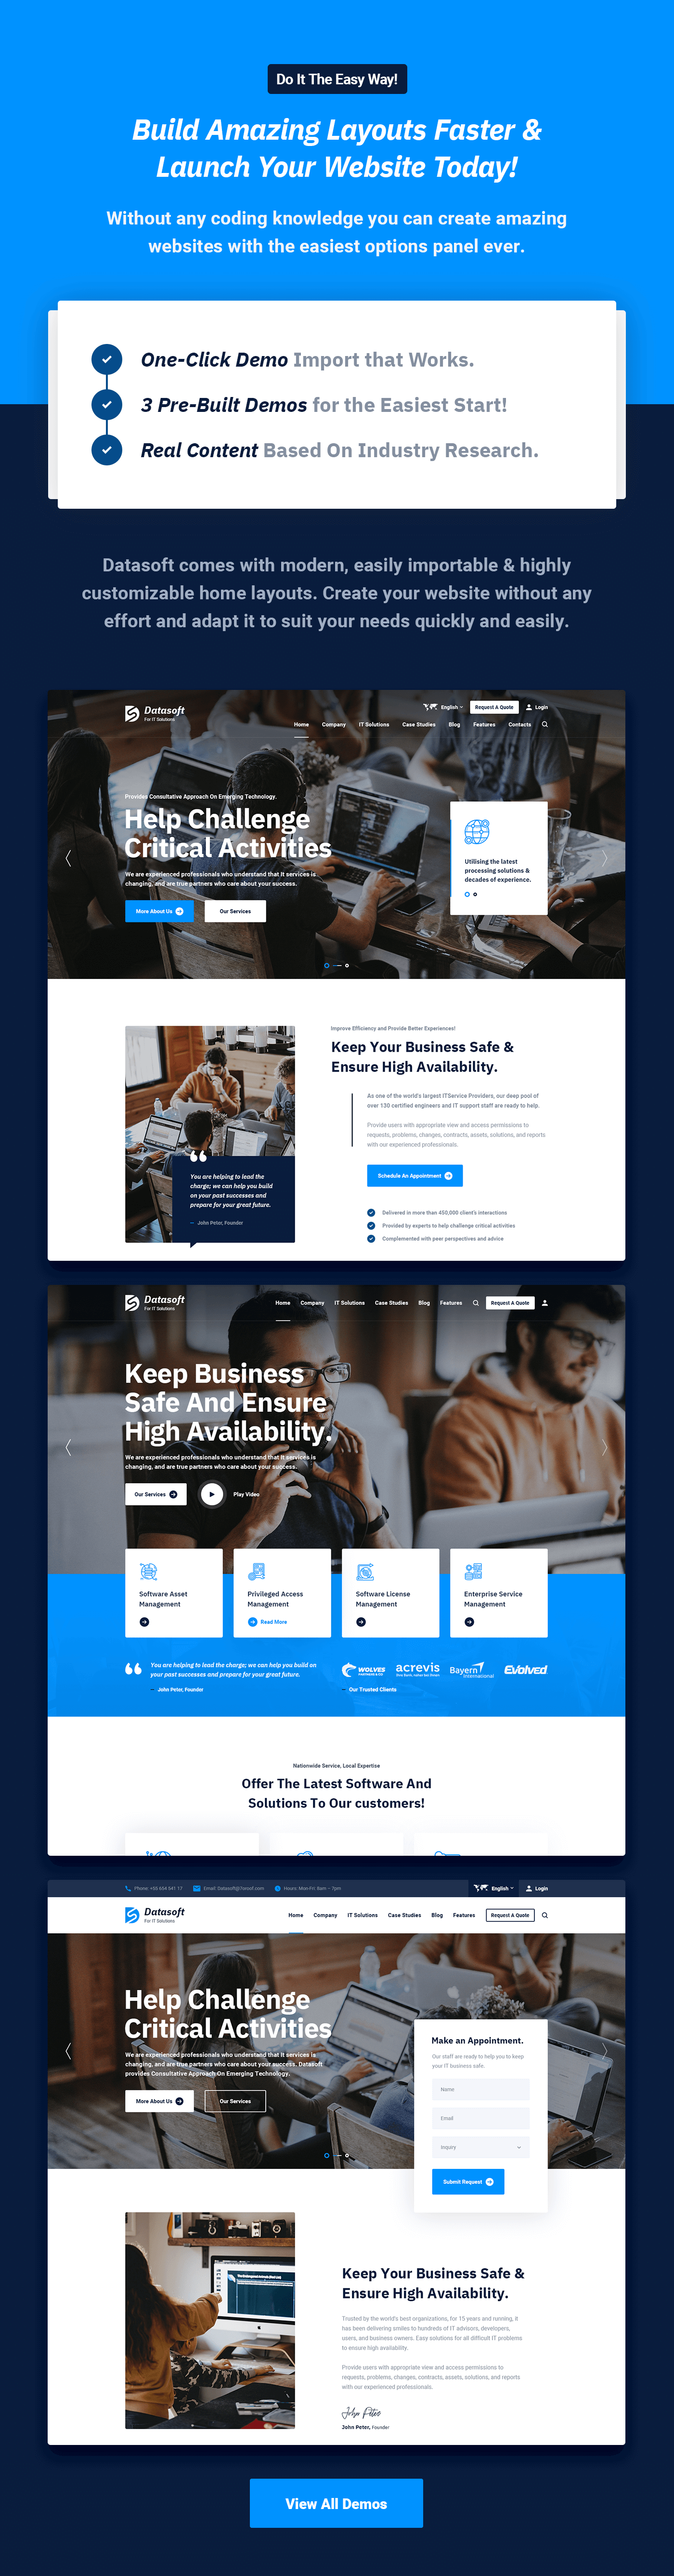 Datasoft - IT Solutions & Services WordPress Theme - 6